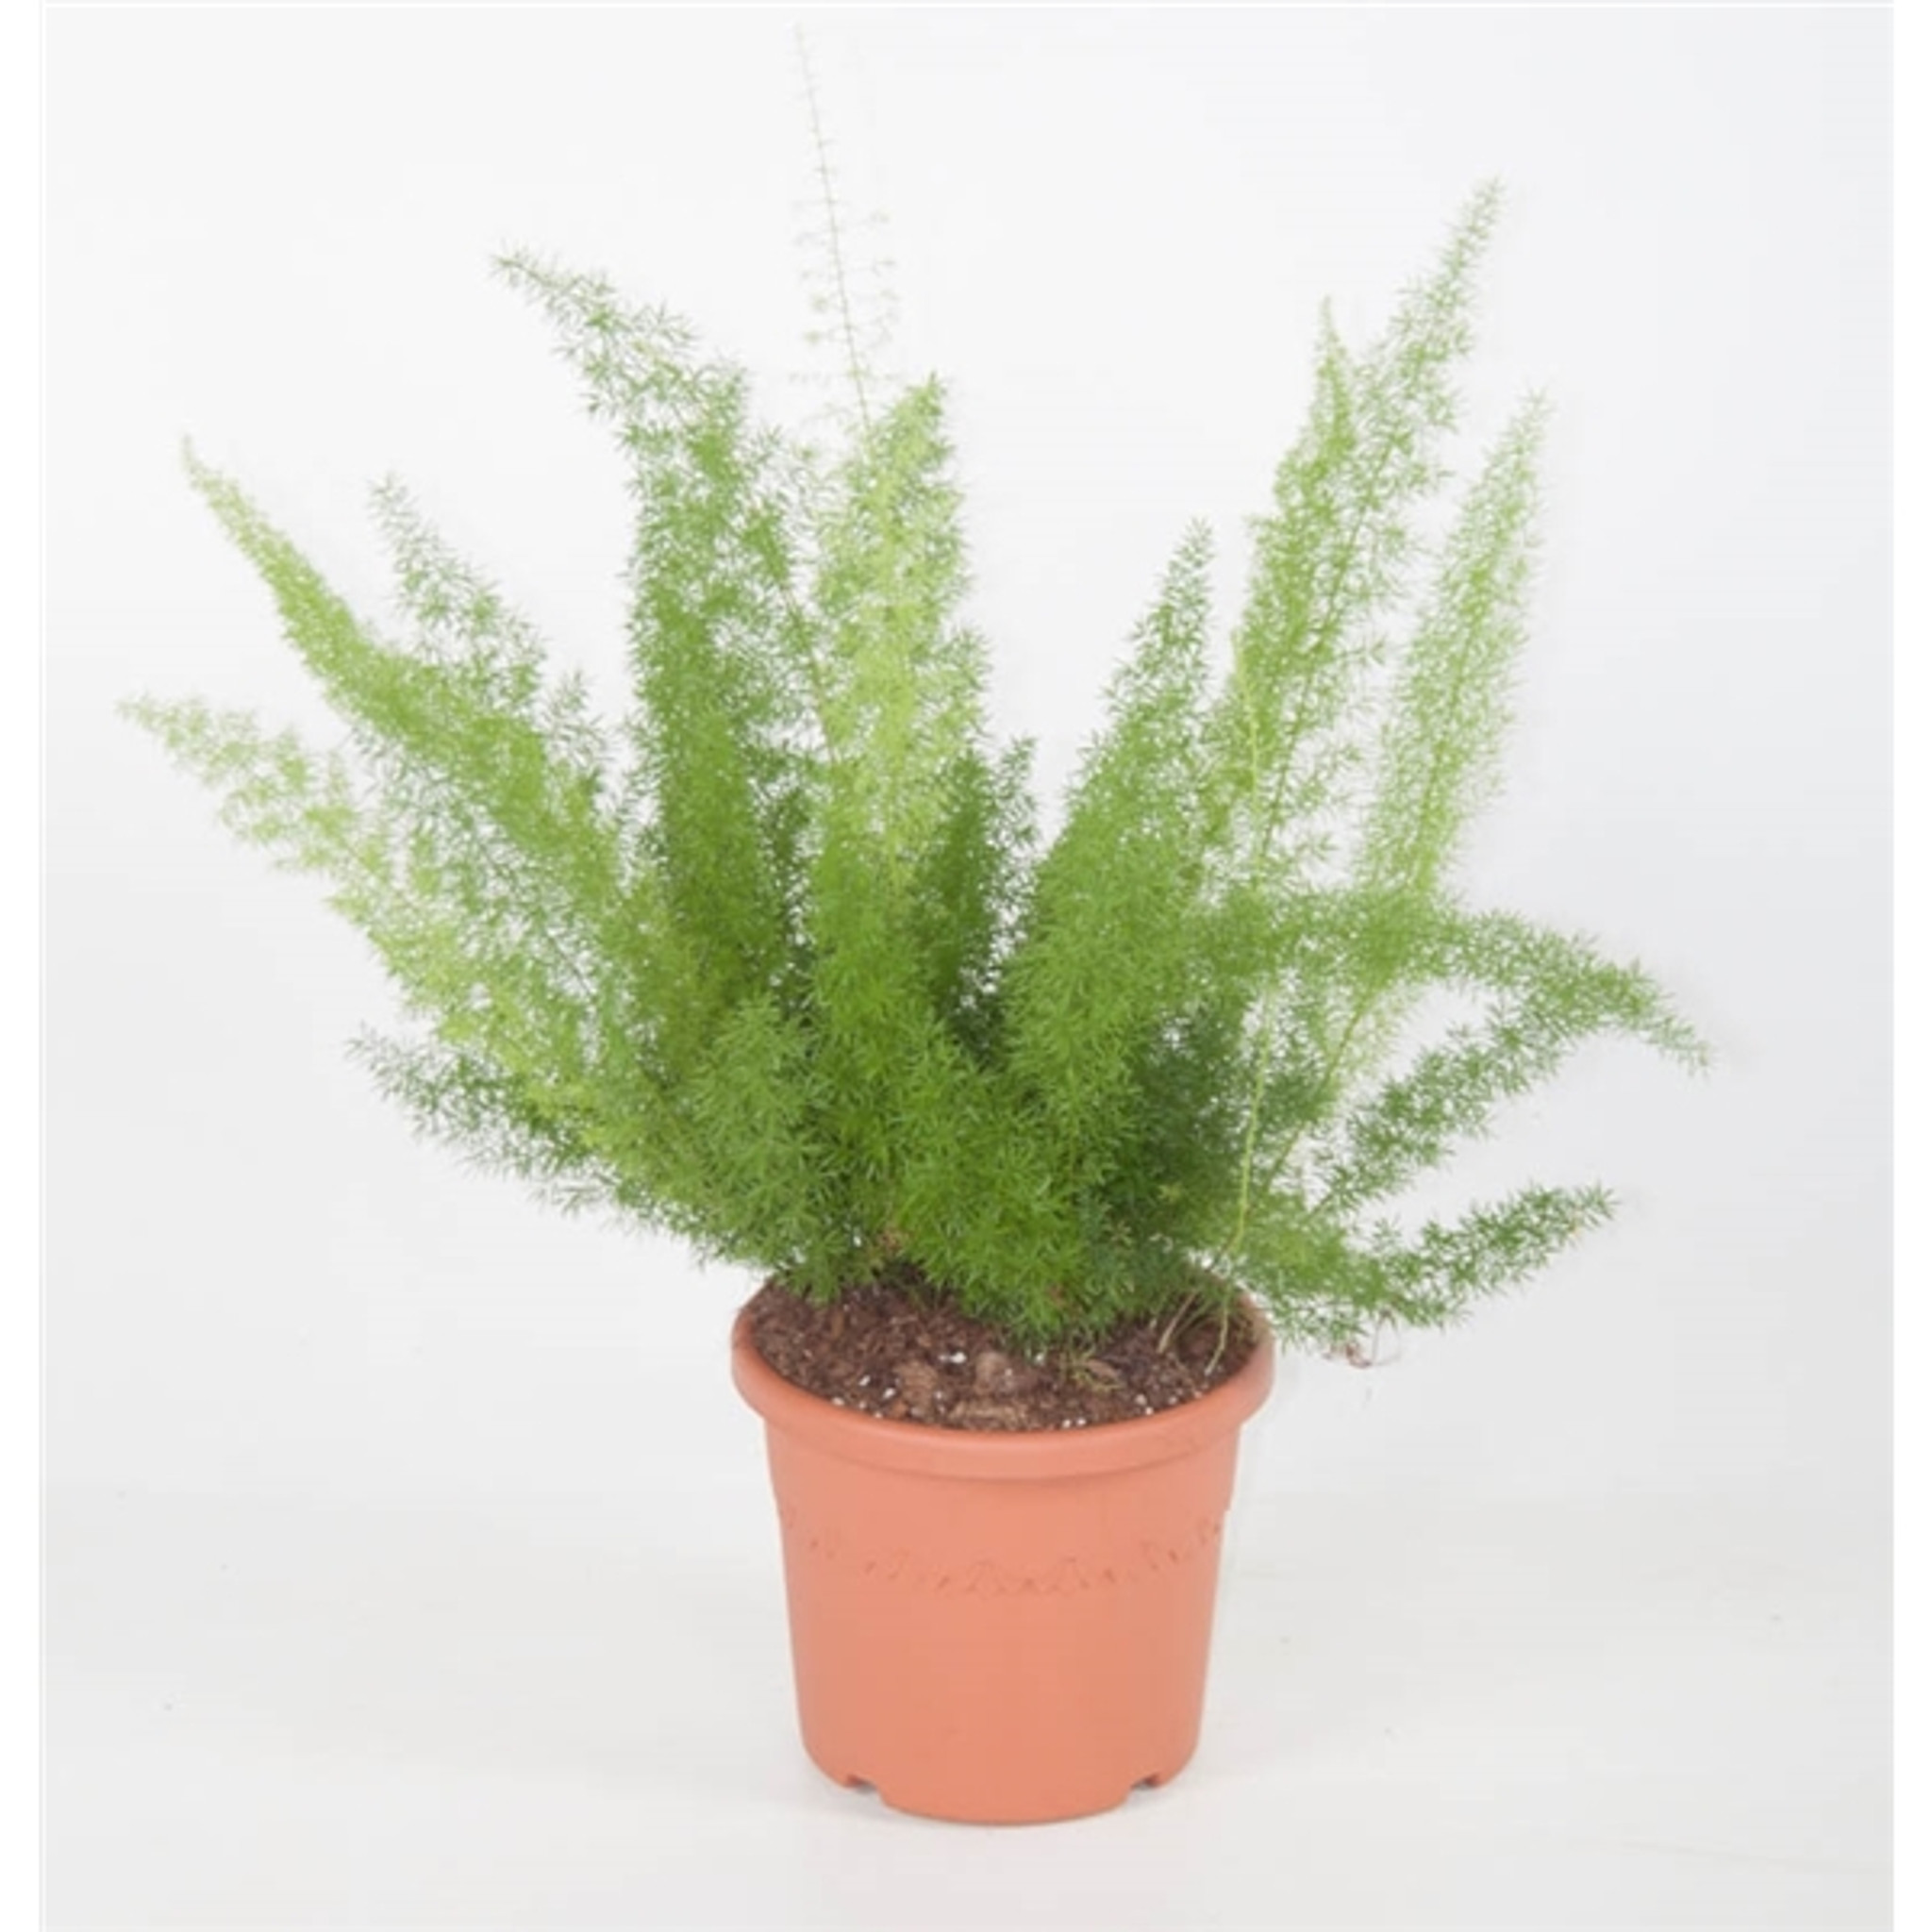 'Myers' Asparagus Fern - Foxtail fern Extra Large -Pot size 21cm, height 70cm.